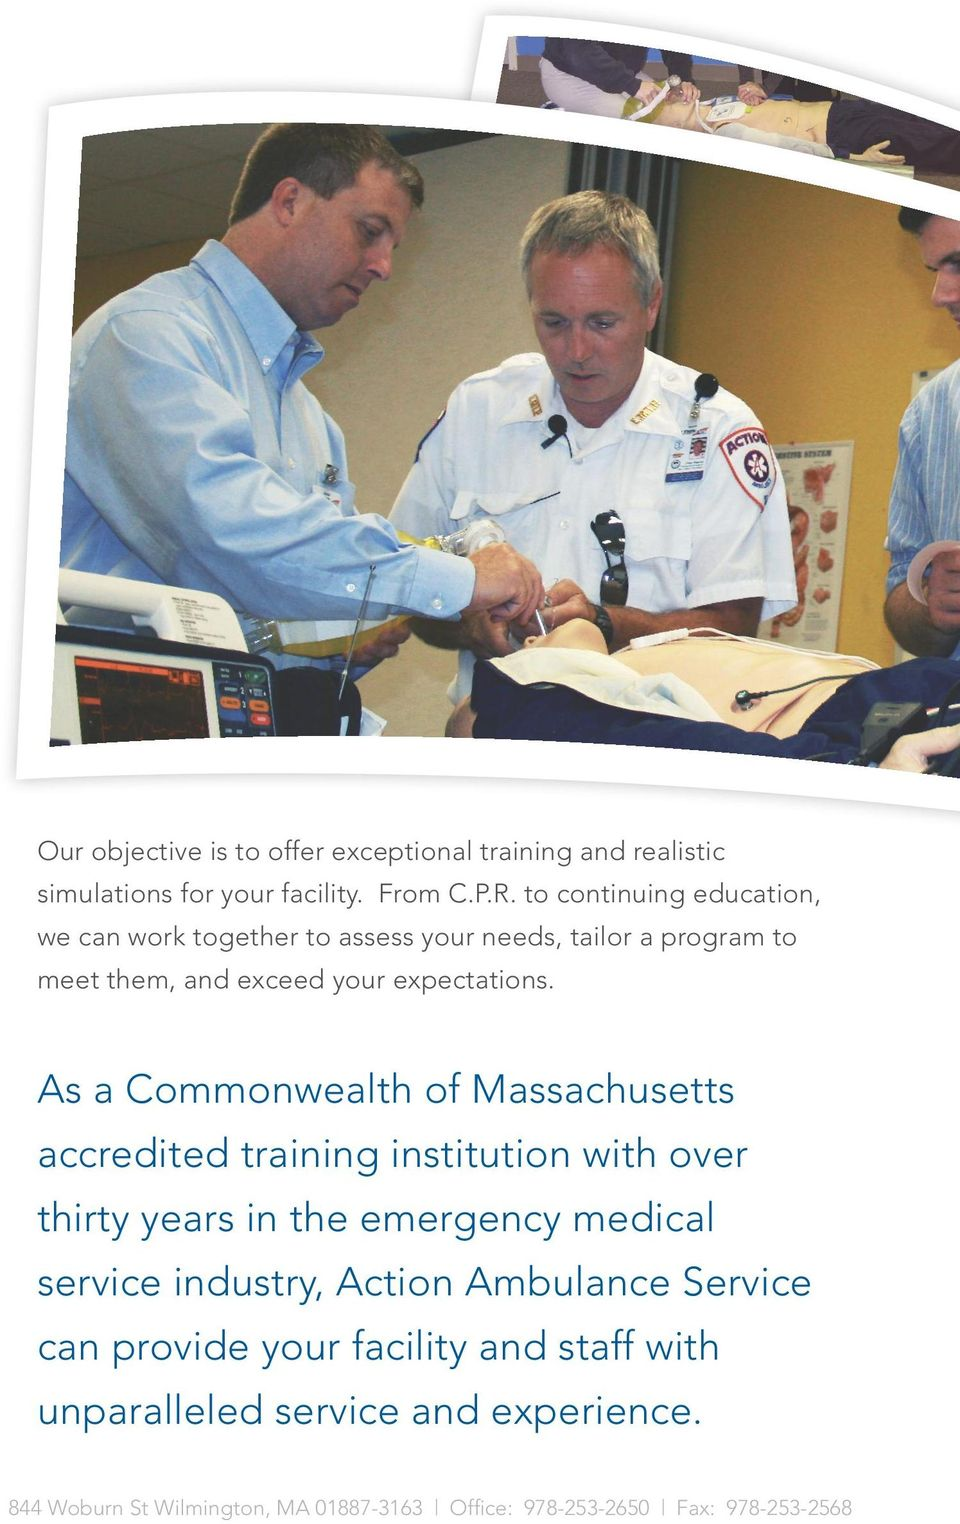 As a Commonwealth of Massachusetts accredited training institution with over thirty years in the emergency medical service industry,